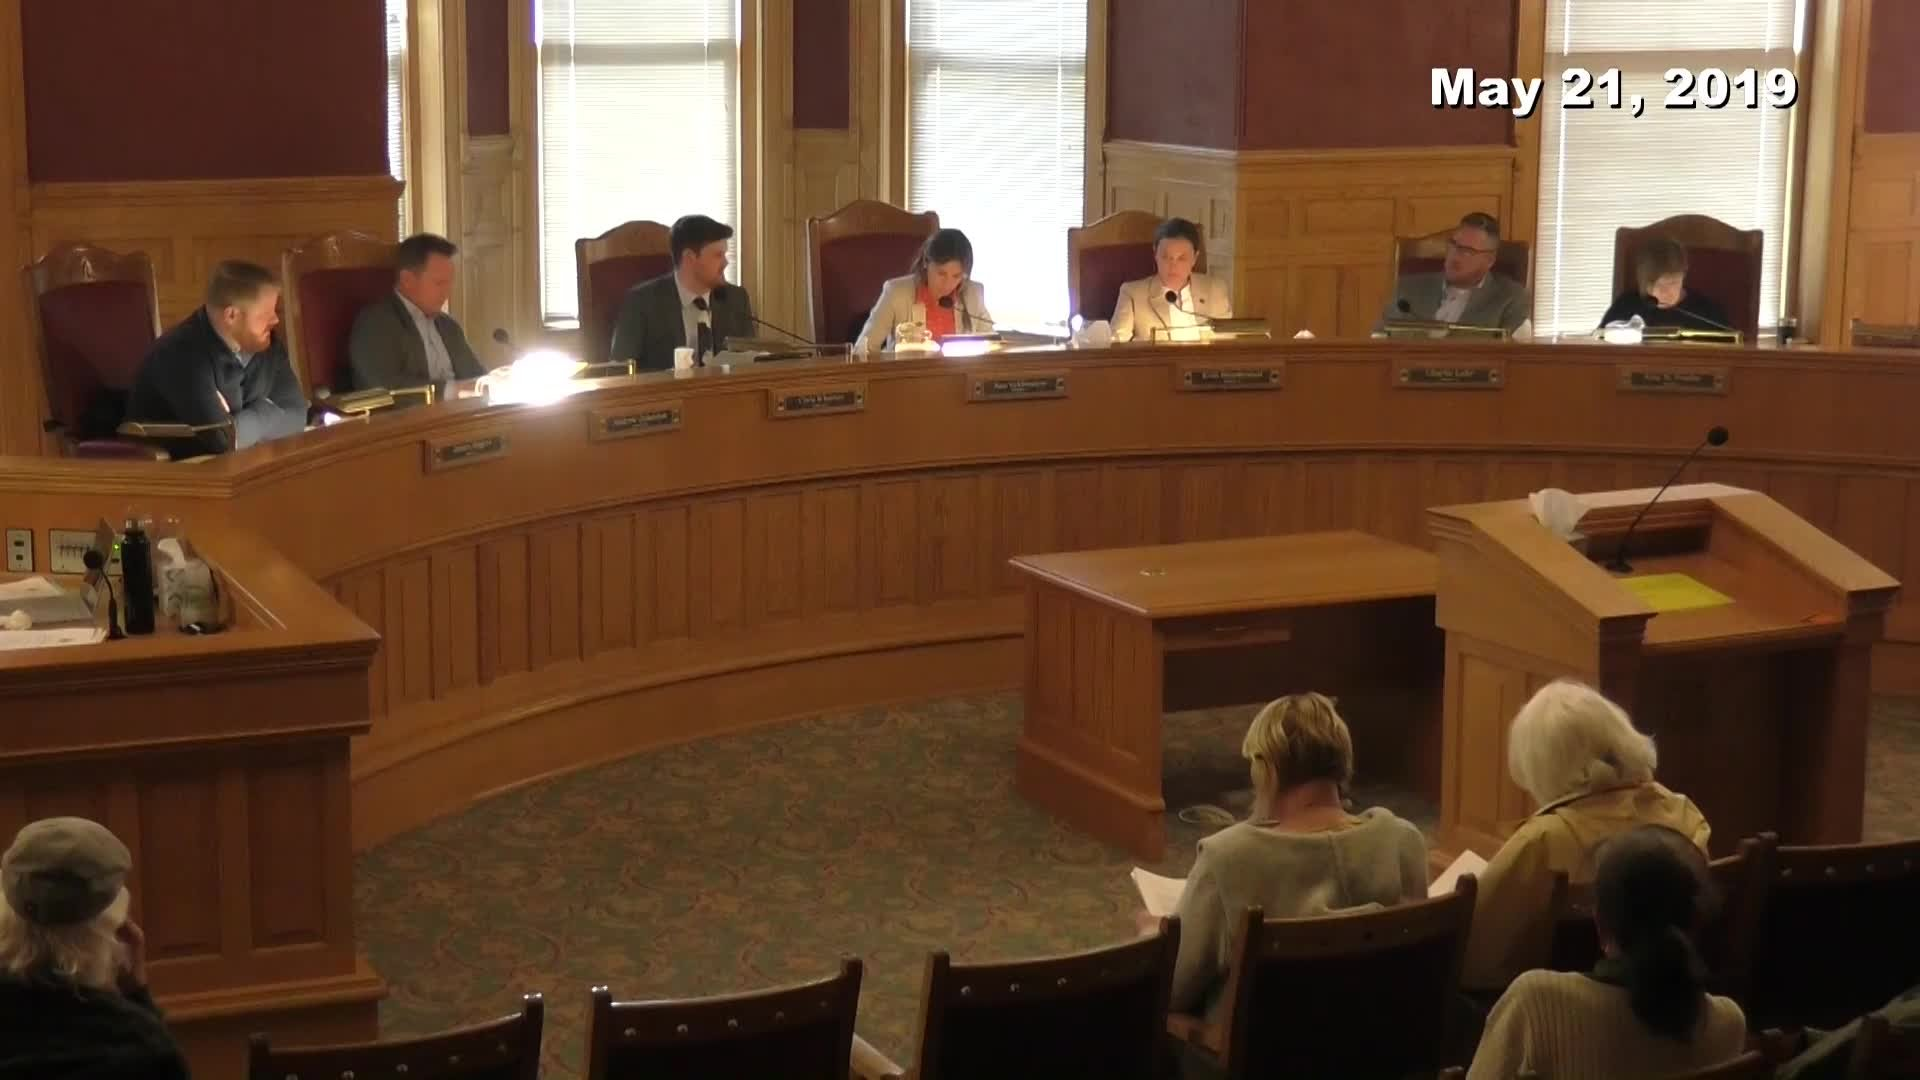 City Council Formal Meeting - 05/21/2019